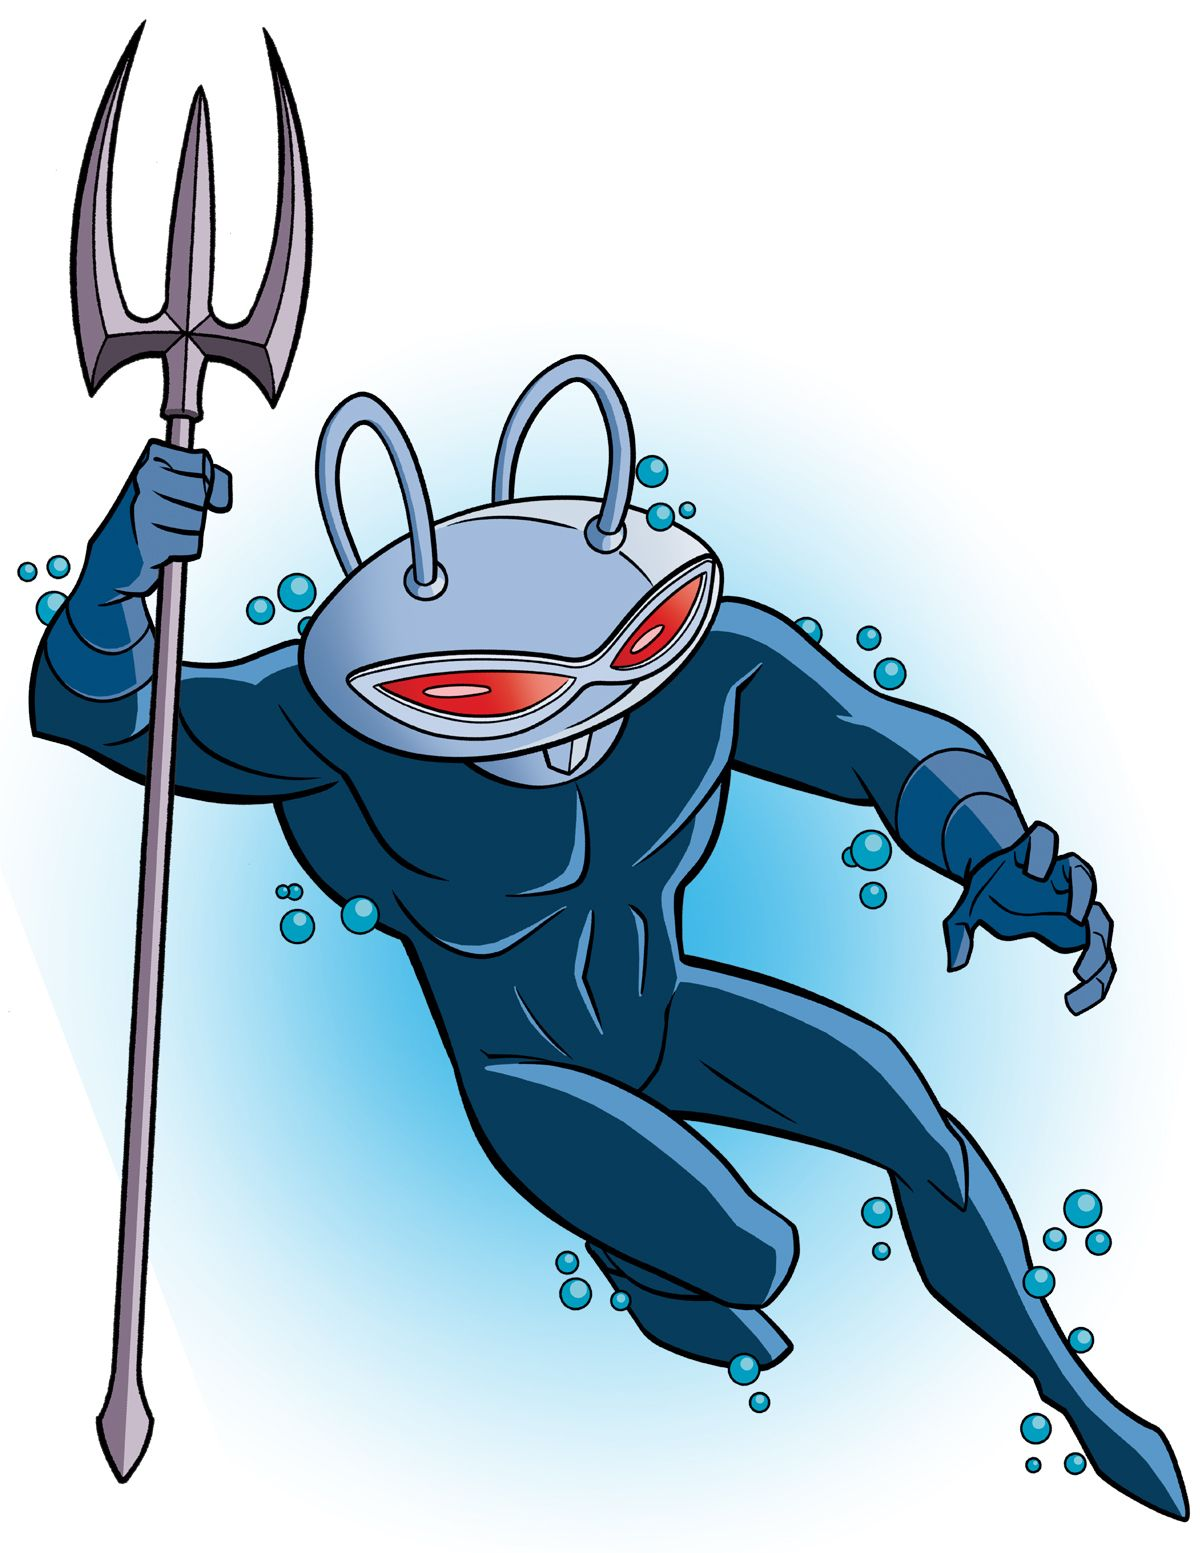 Black manta clipart image How To Draw DC Villains - Black Manta by TimLevins | DC | Black ... image